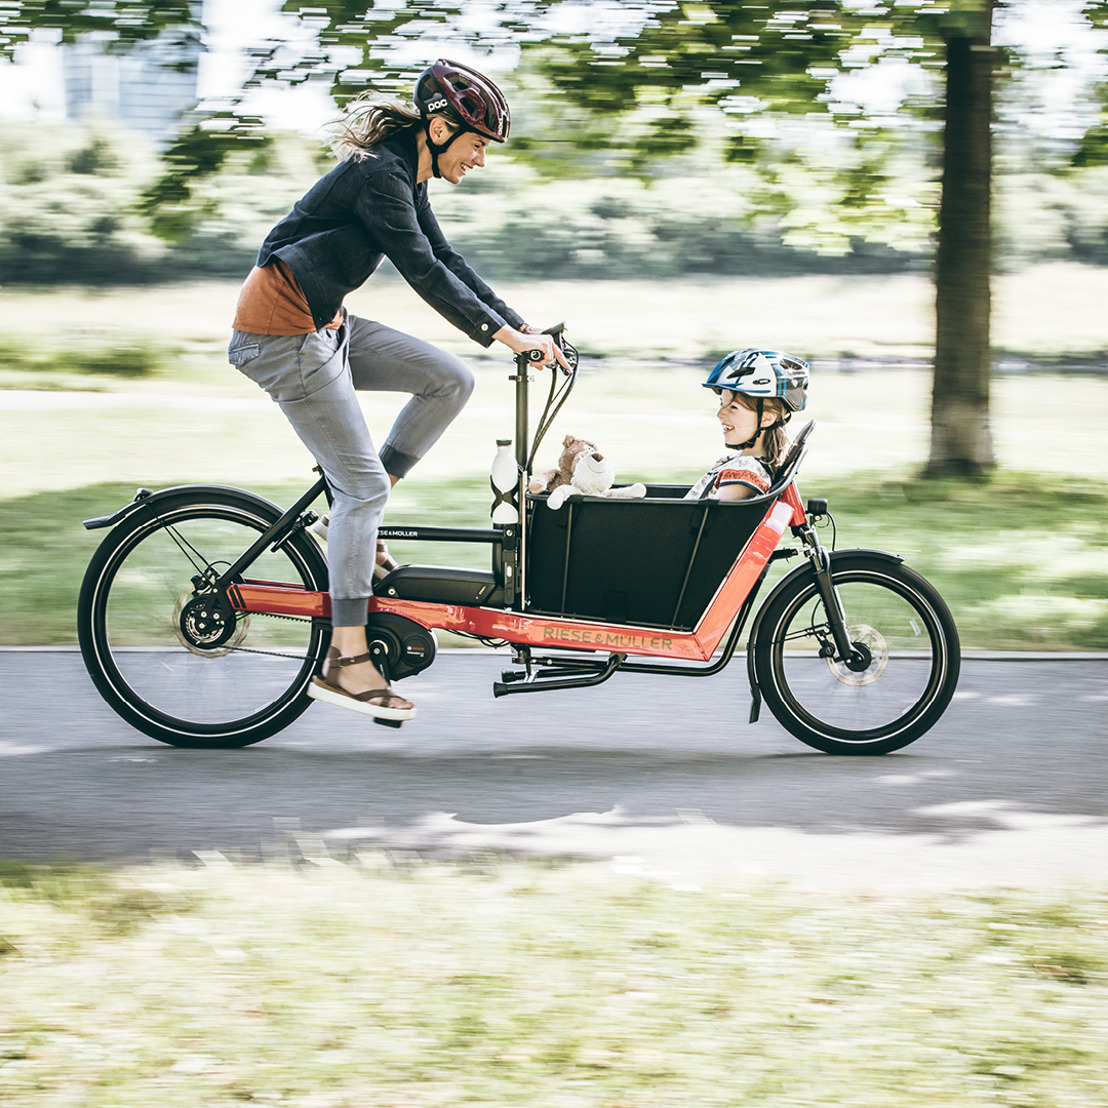 Media Invite: eBike Experience in SF (May 4 & 7) - We'll come to you